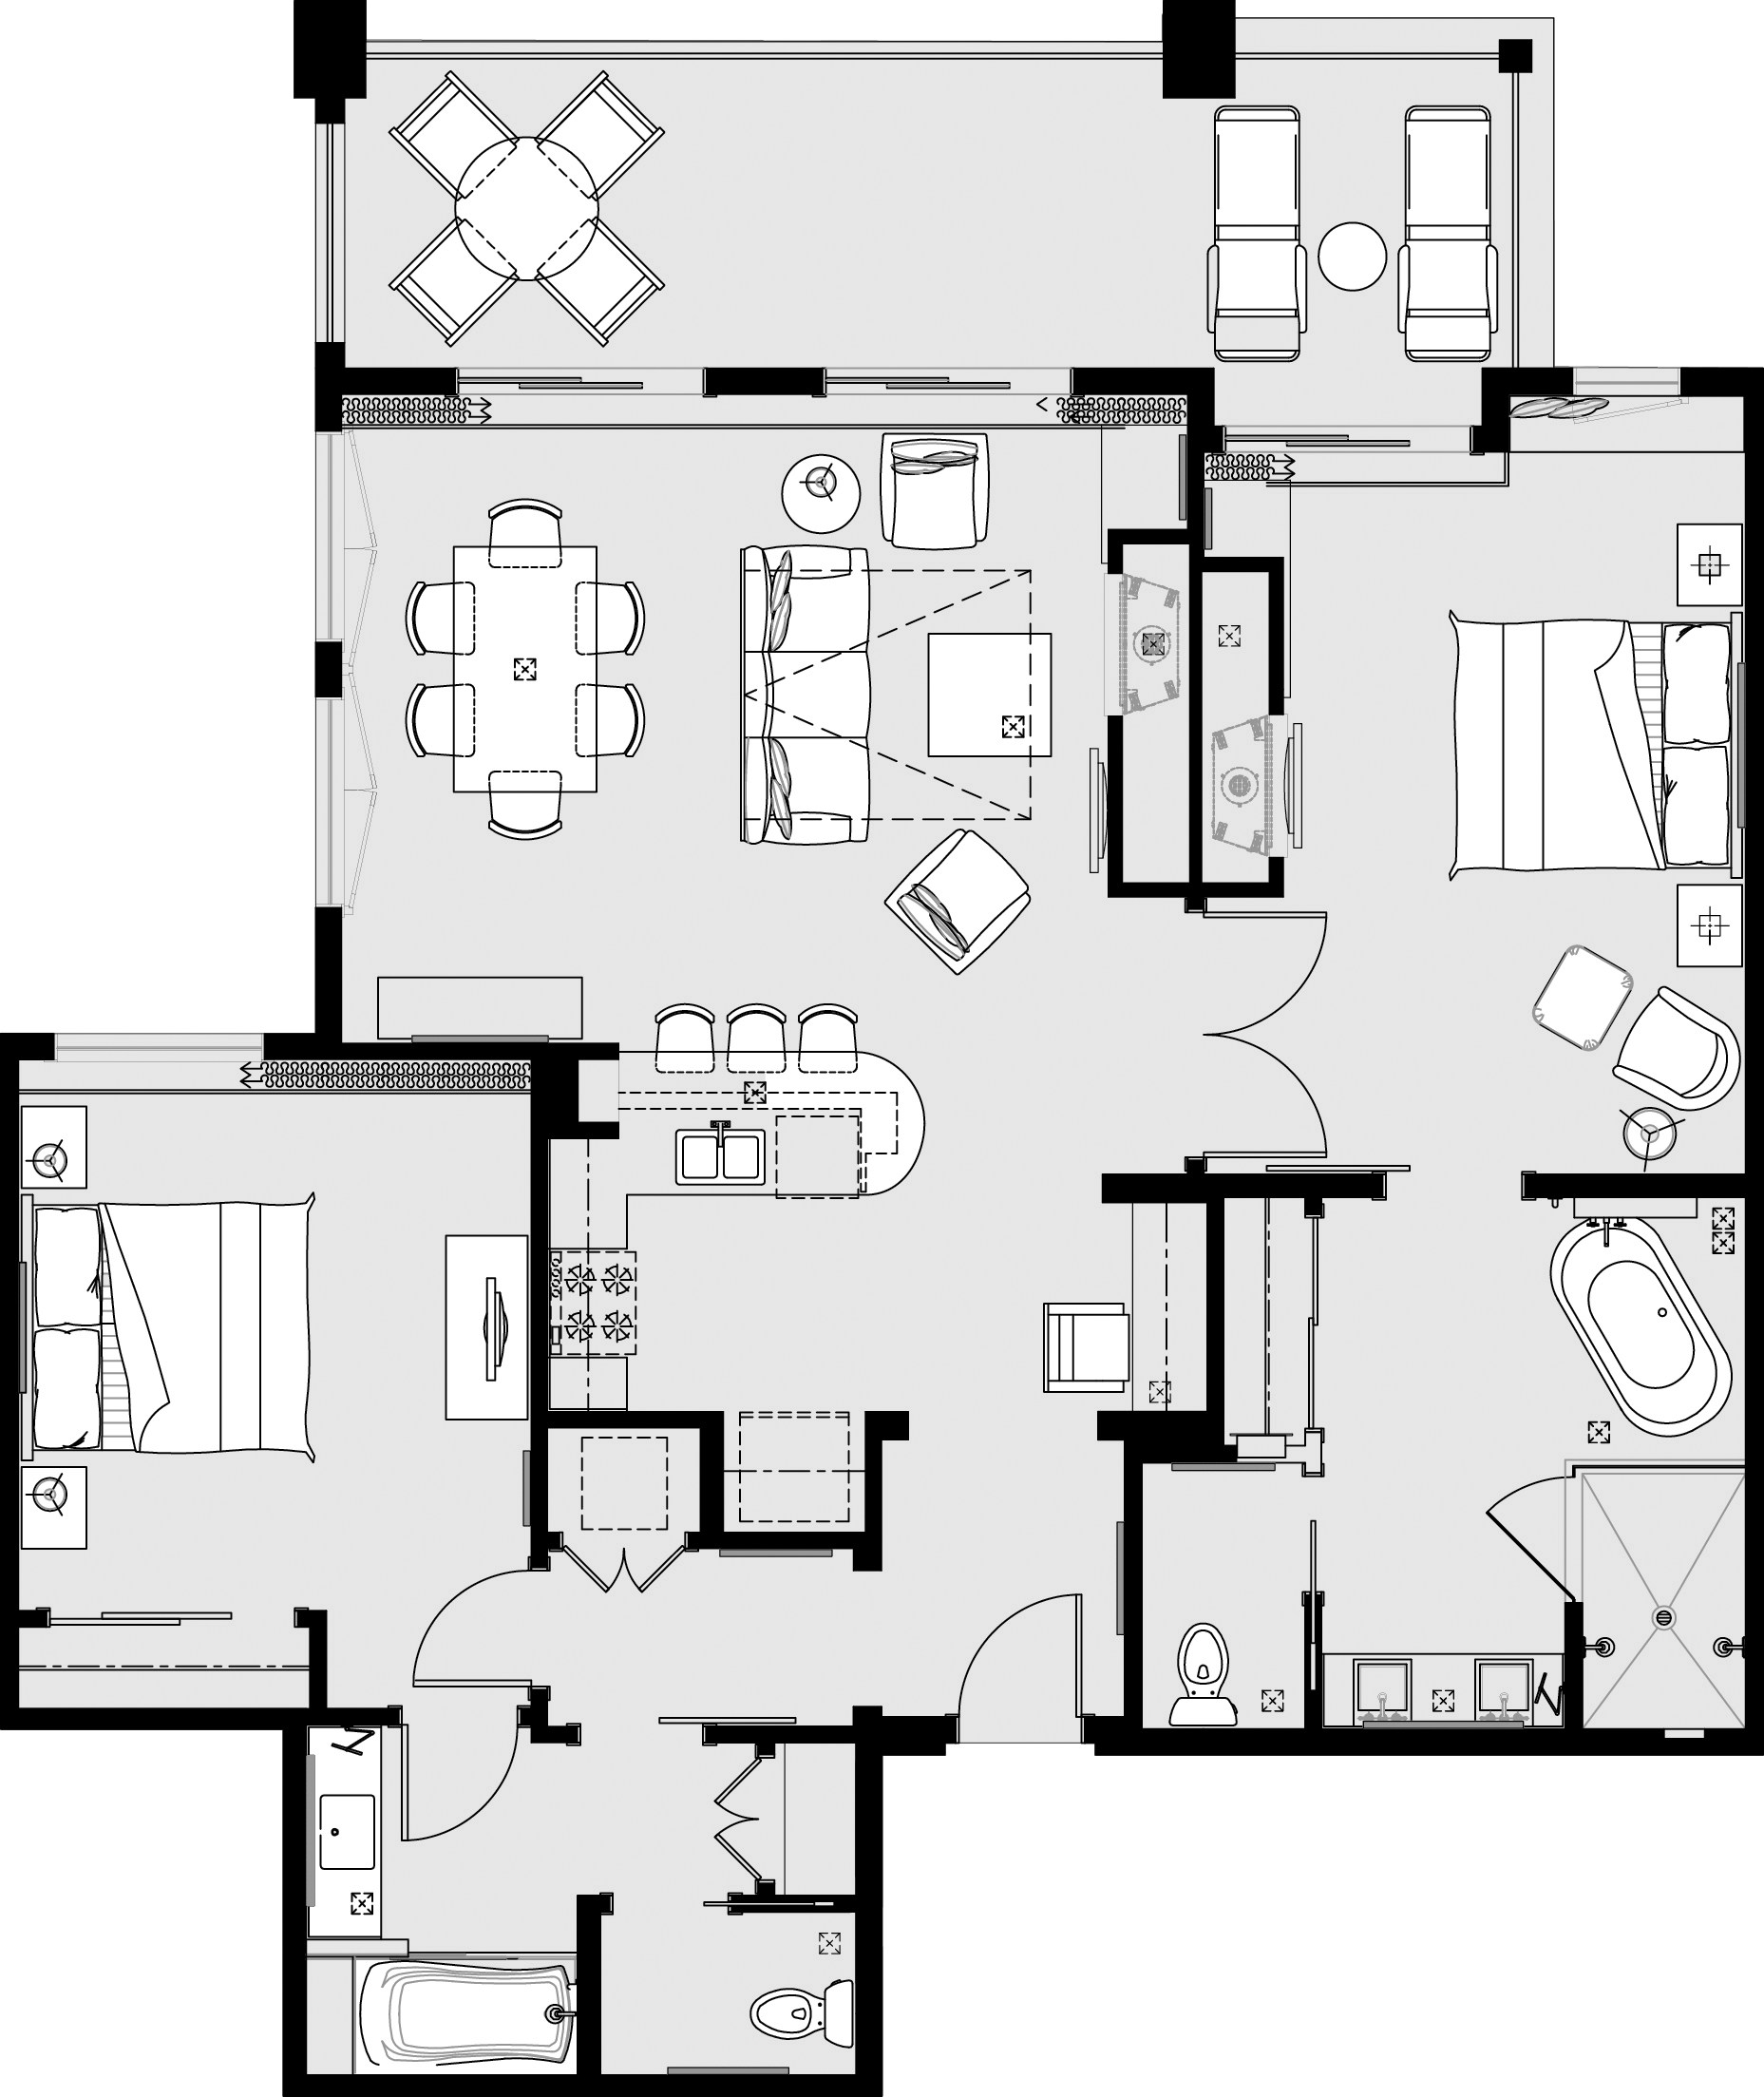 Diner drawing restaurant floor plan